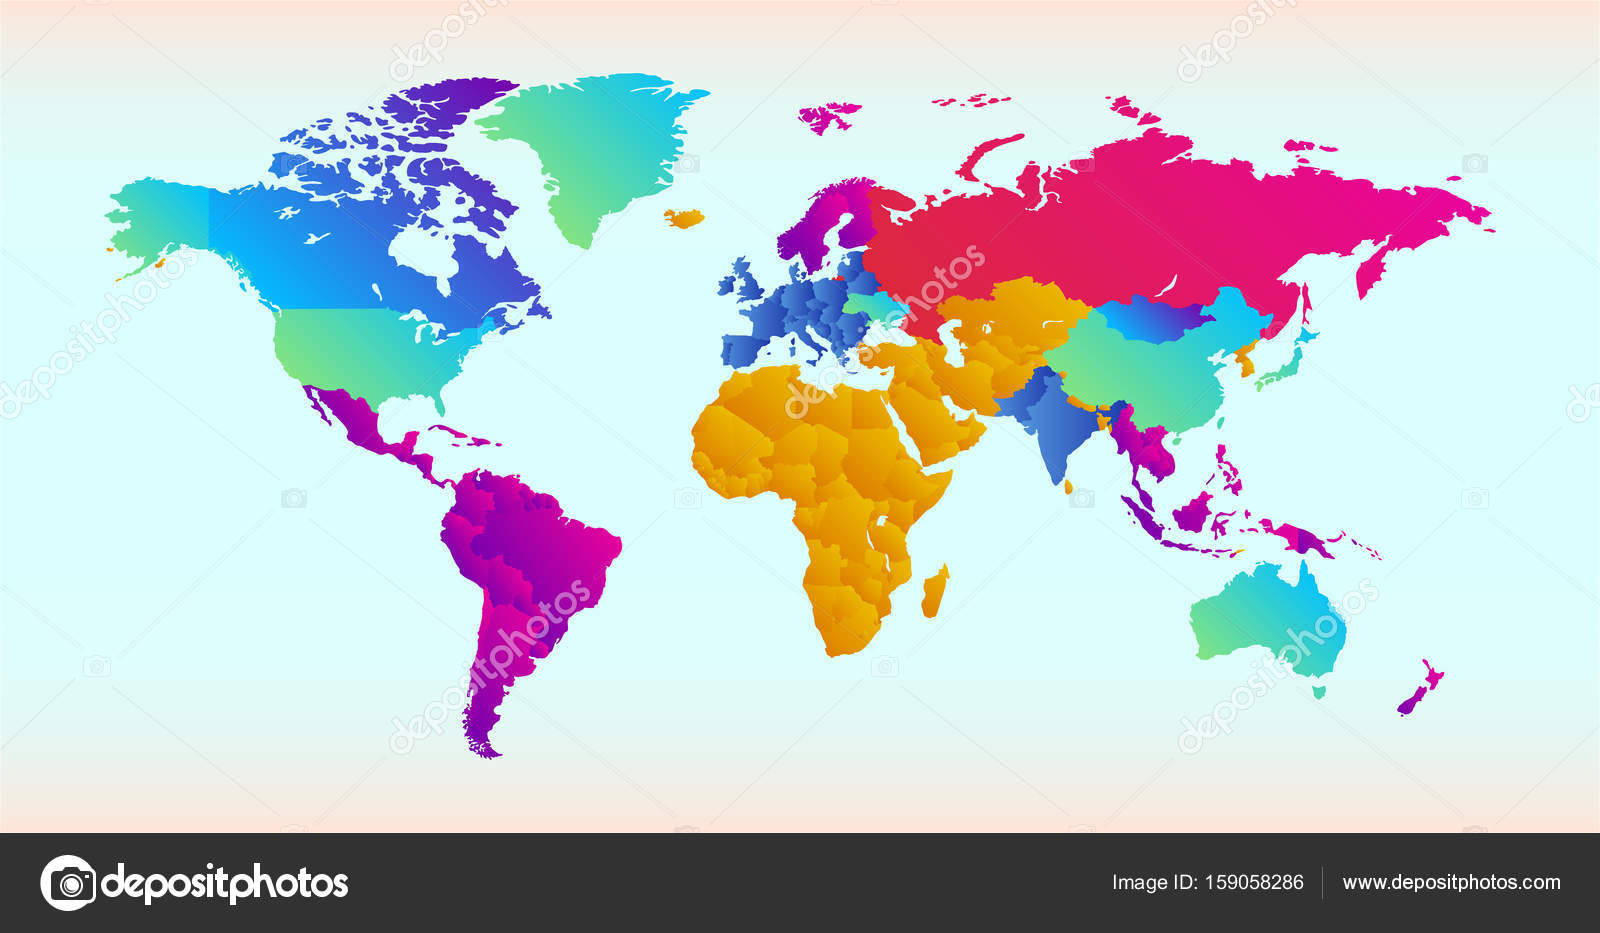 Vector illustration of World map with different colored countries ...